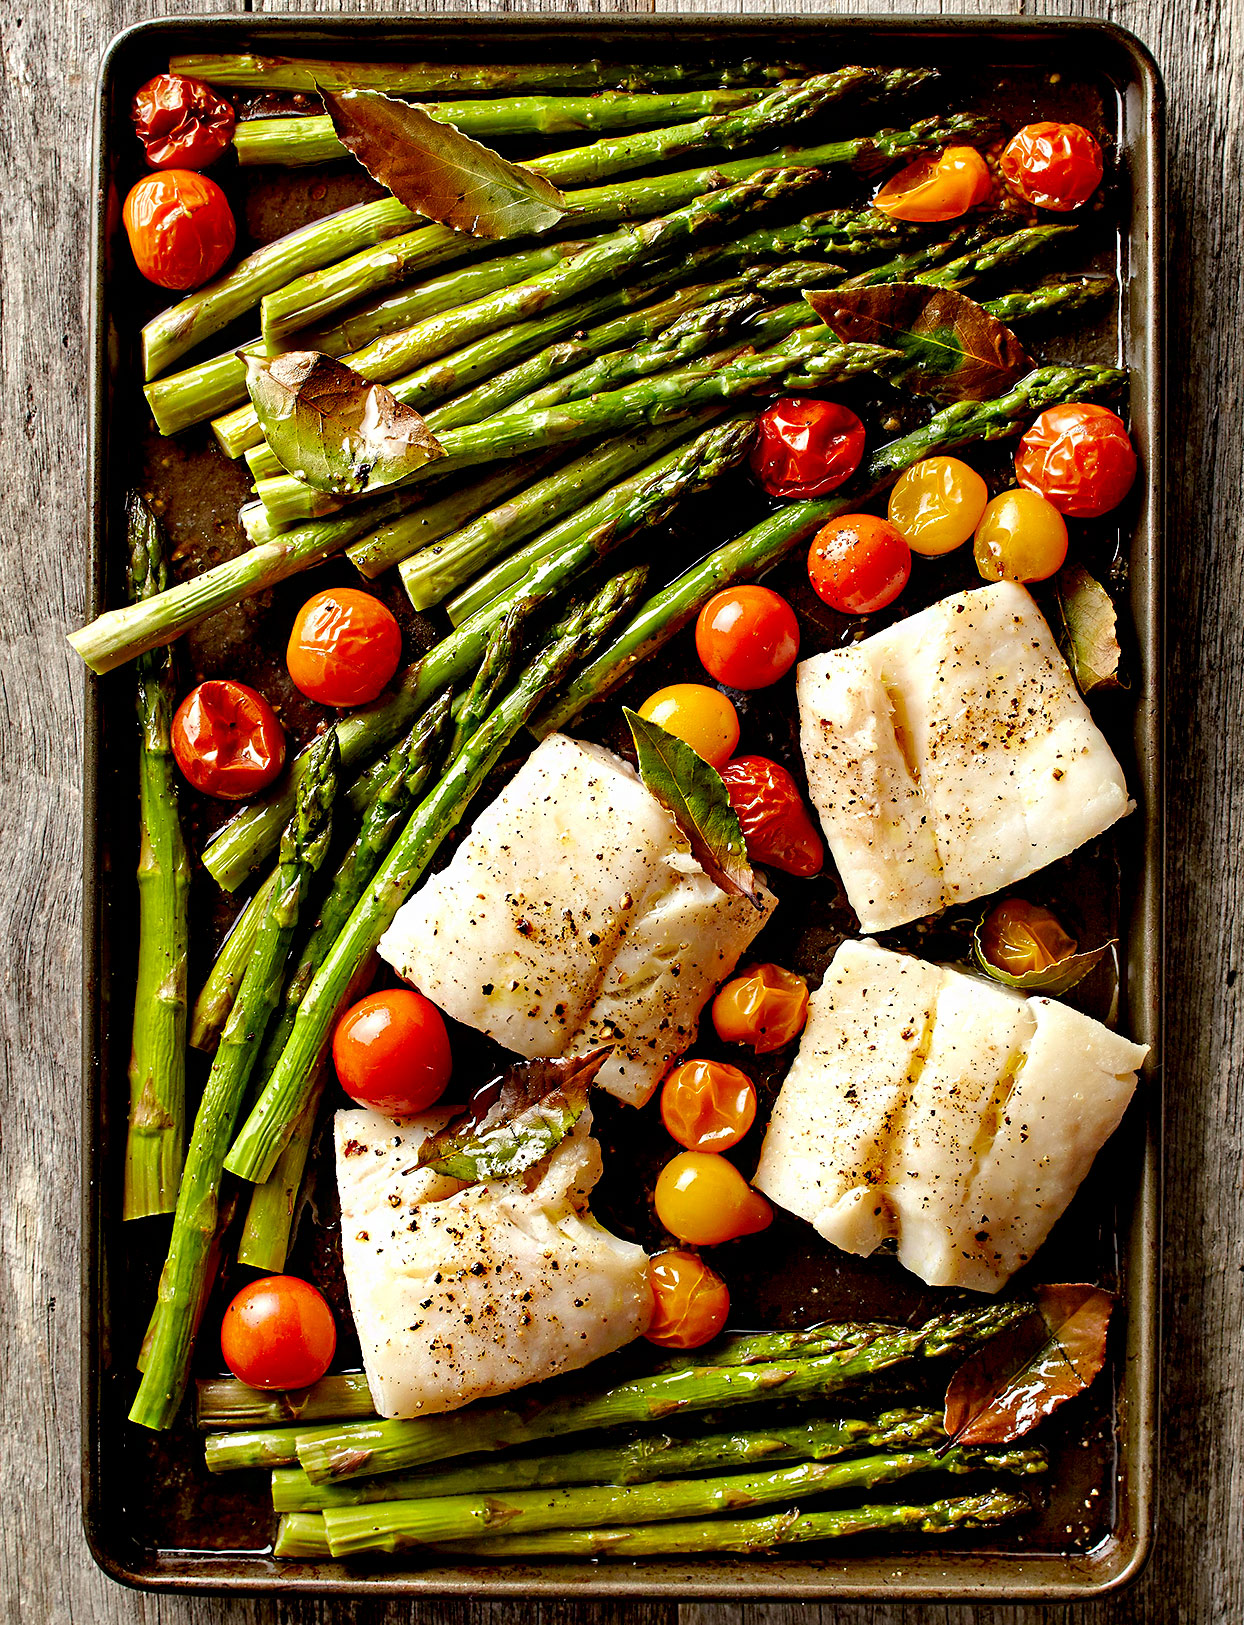 Roasted Asparagus, Fish, and Bay Leaves